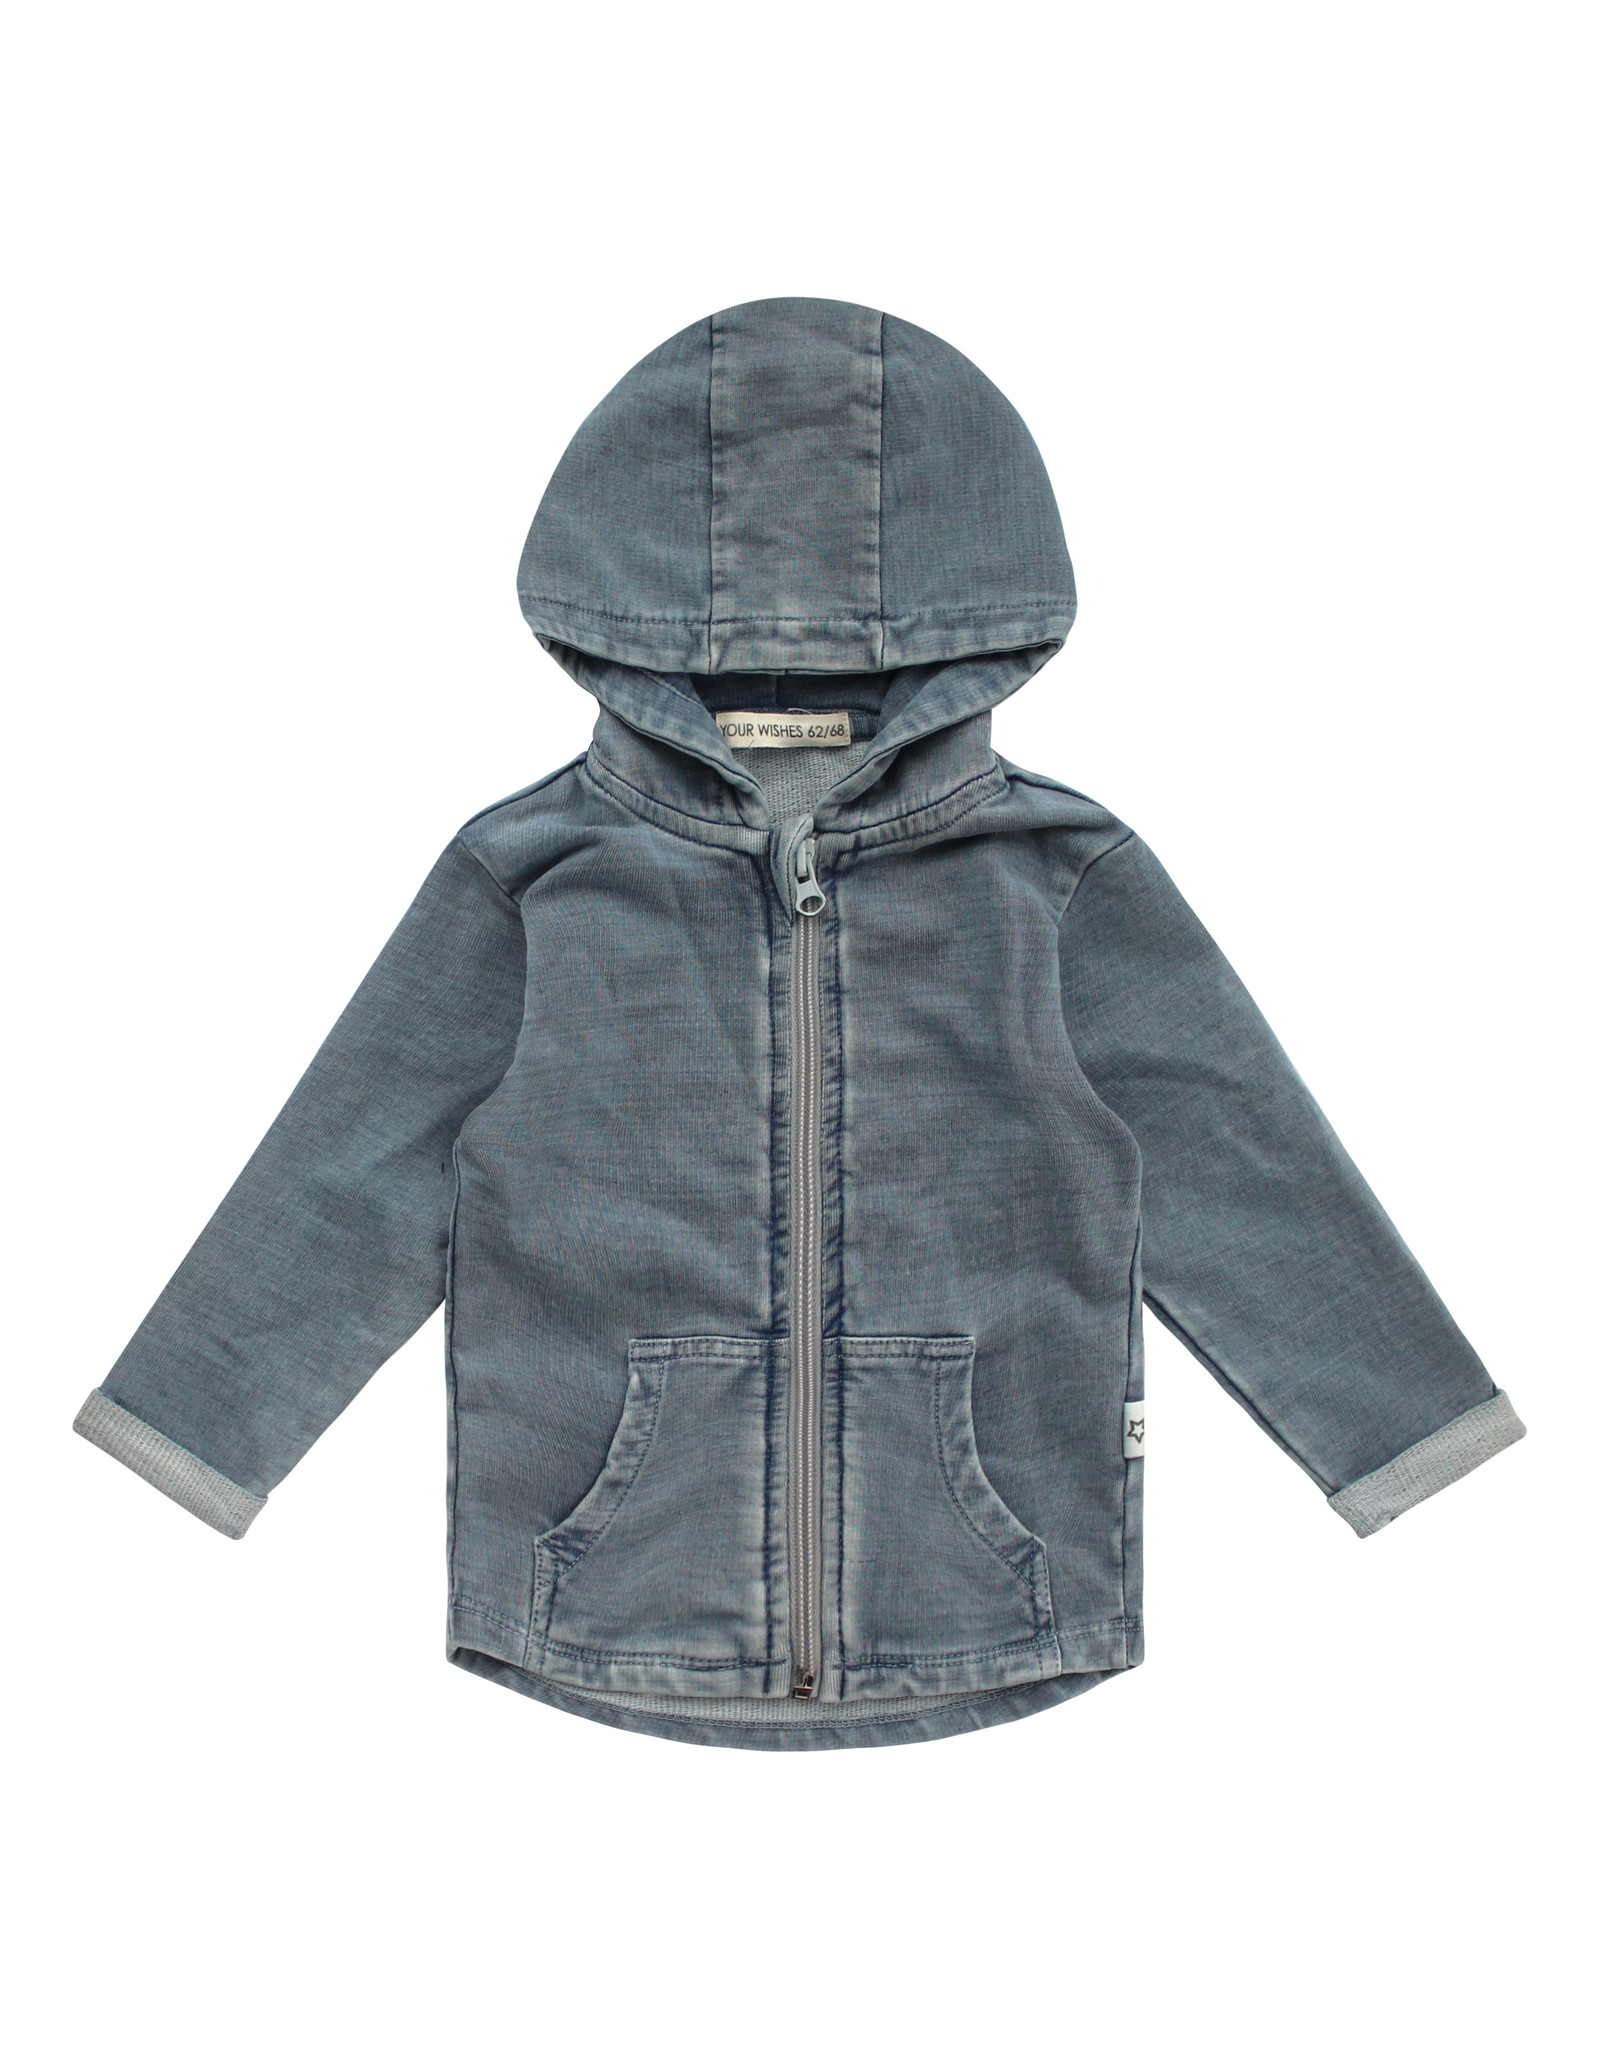 Your Wishes Knitted Denim | Zipper Pocket Cardigan kids